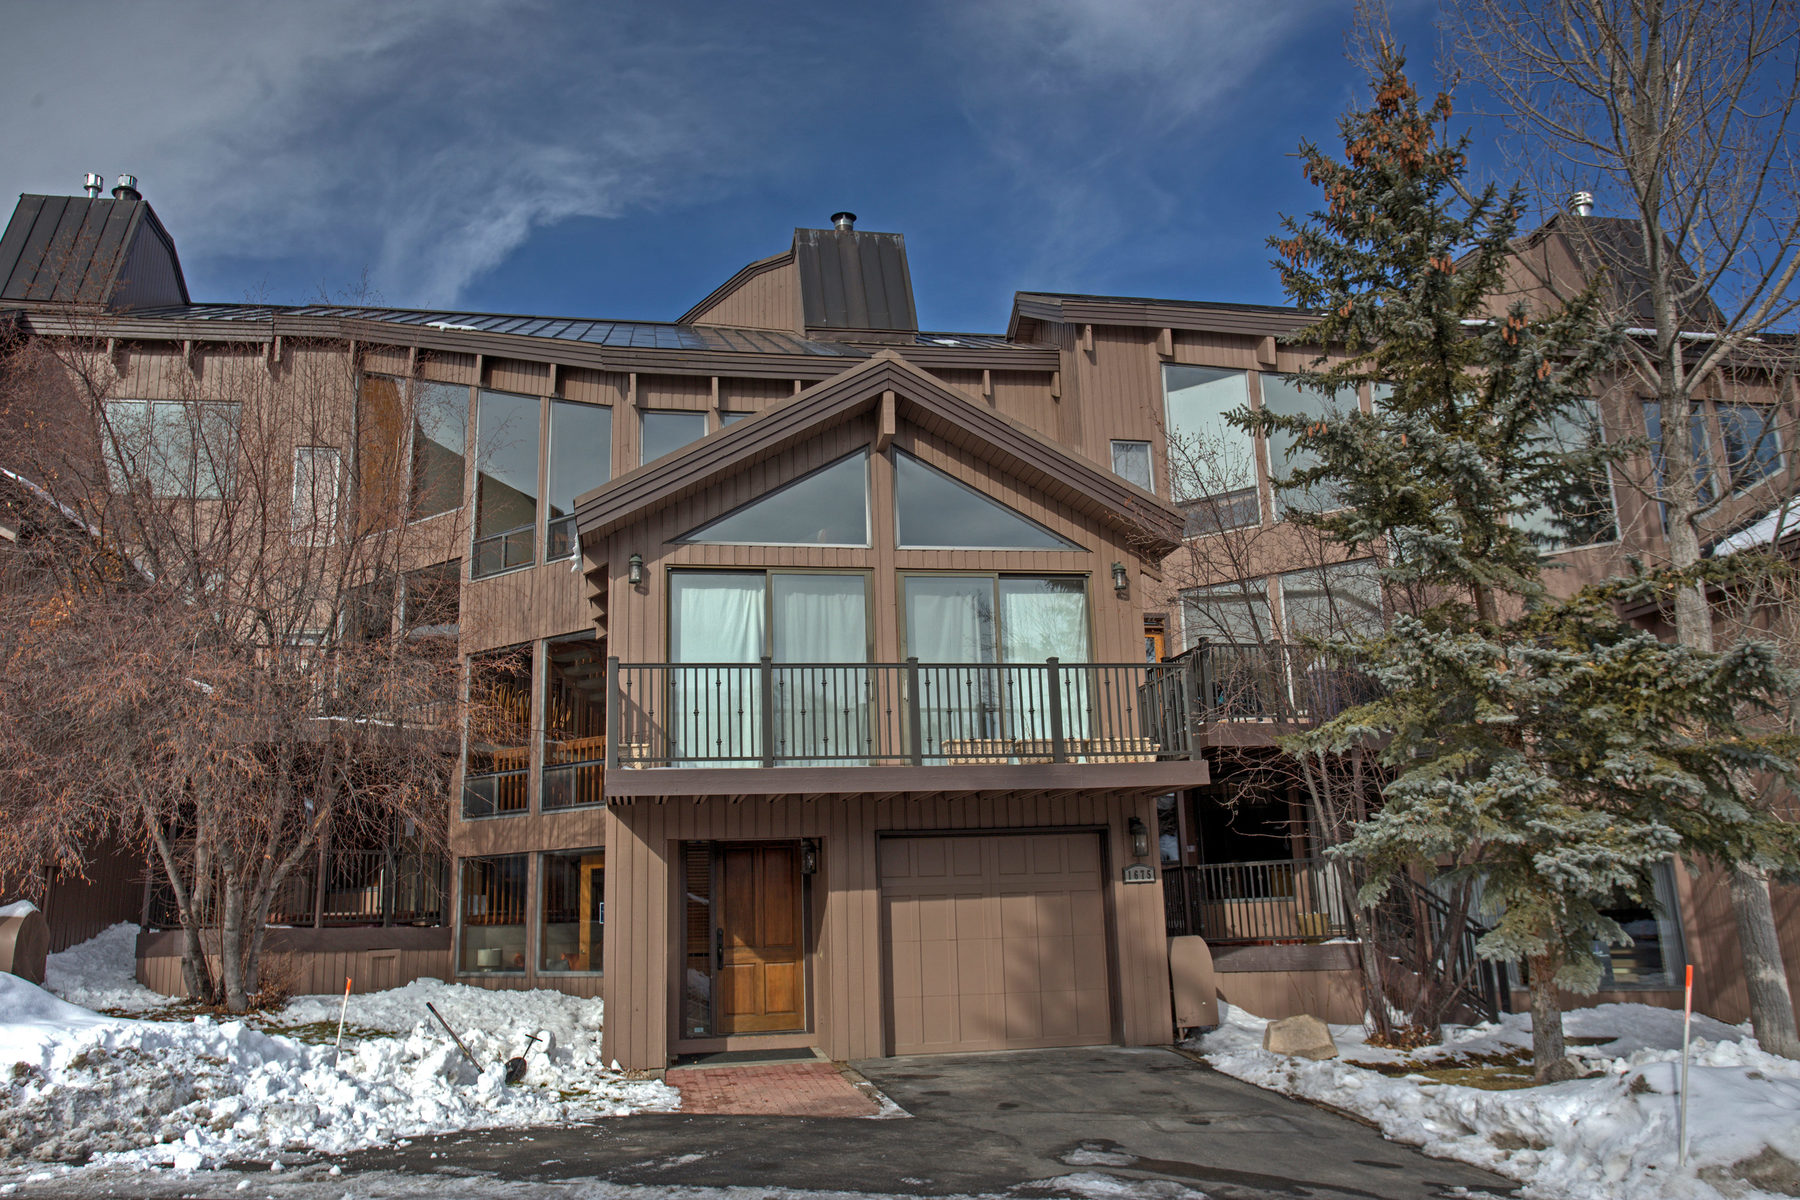 Condominium for Sale at Recently Remodeled Four Bedroom Pinnacle Condo 1675 Amber Rd # 58 Park City, Utah, 84060 United States